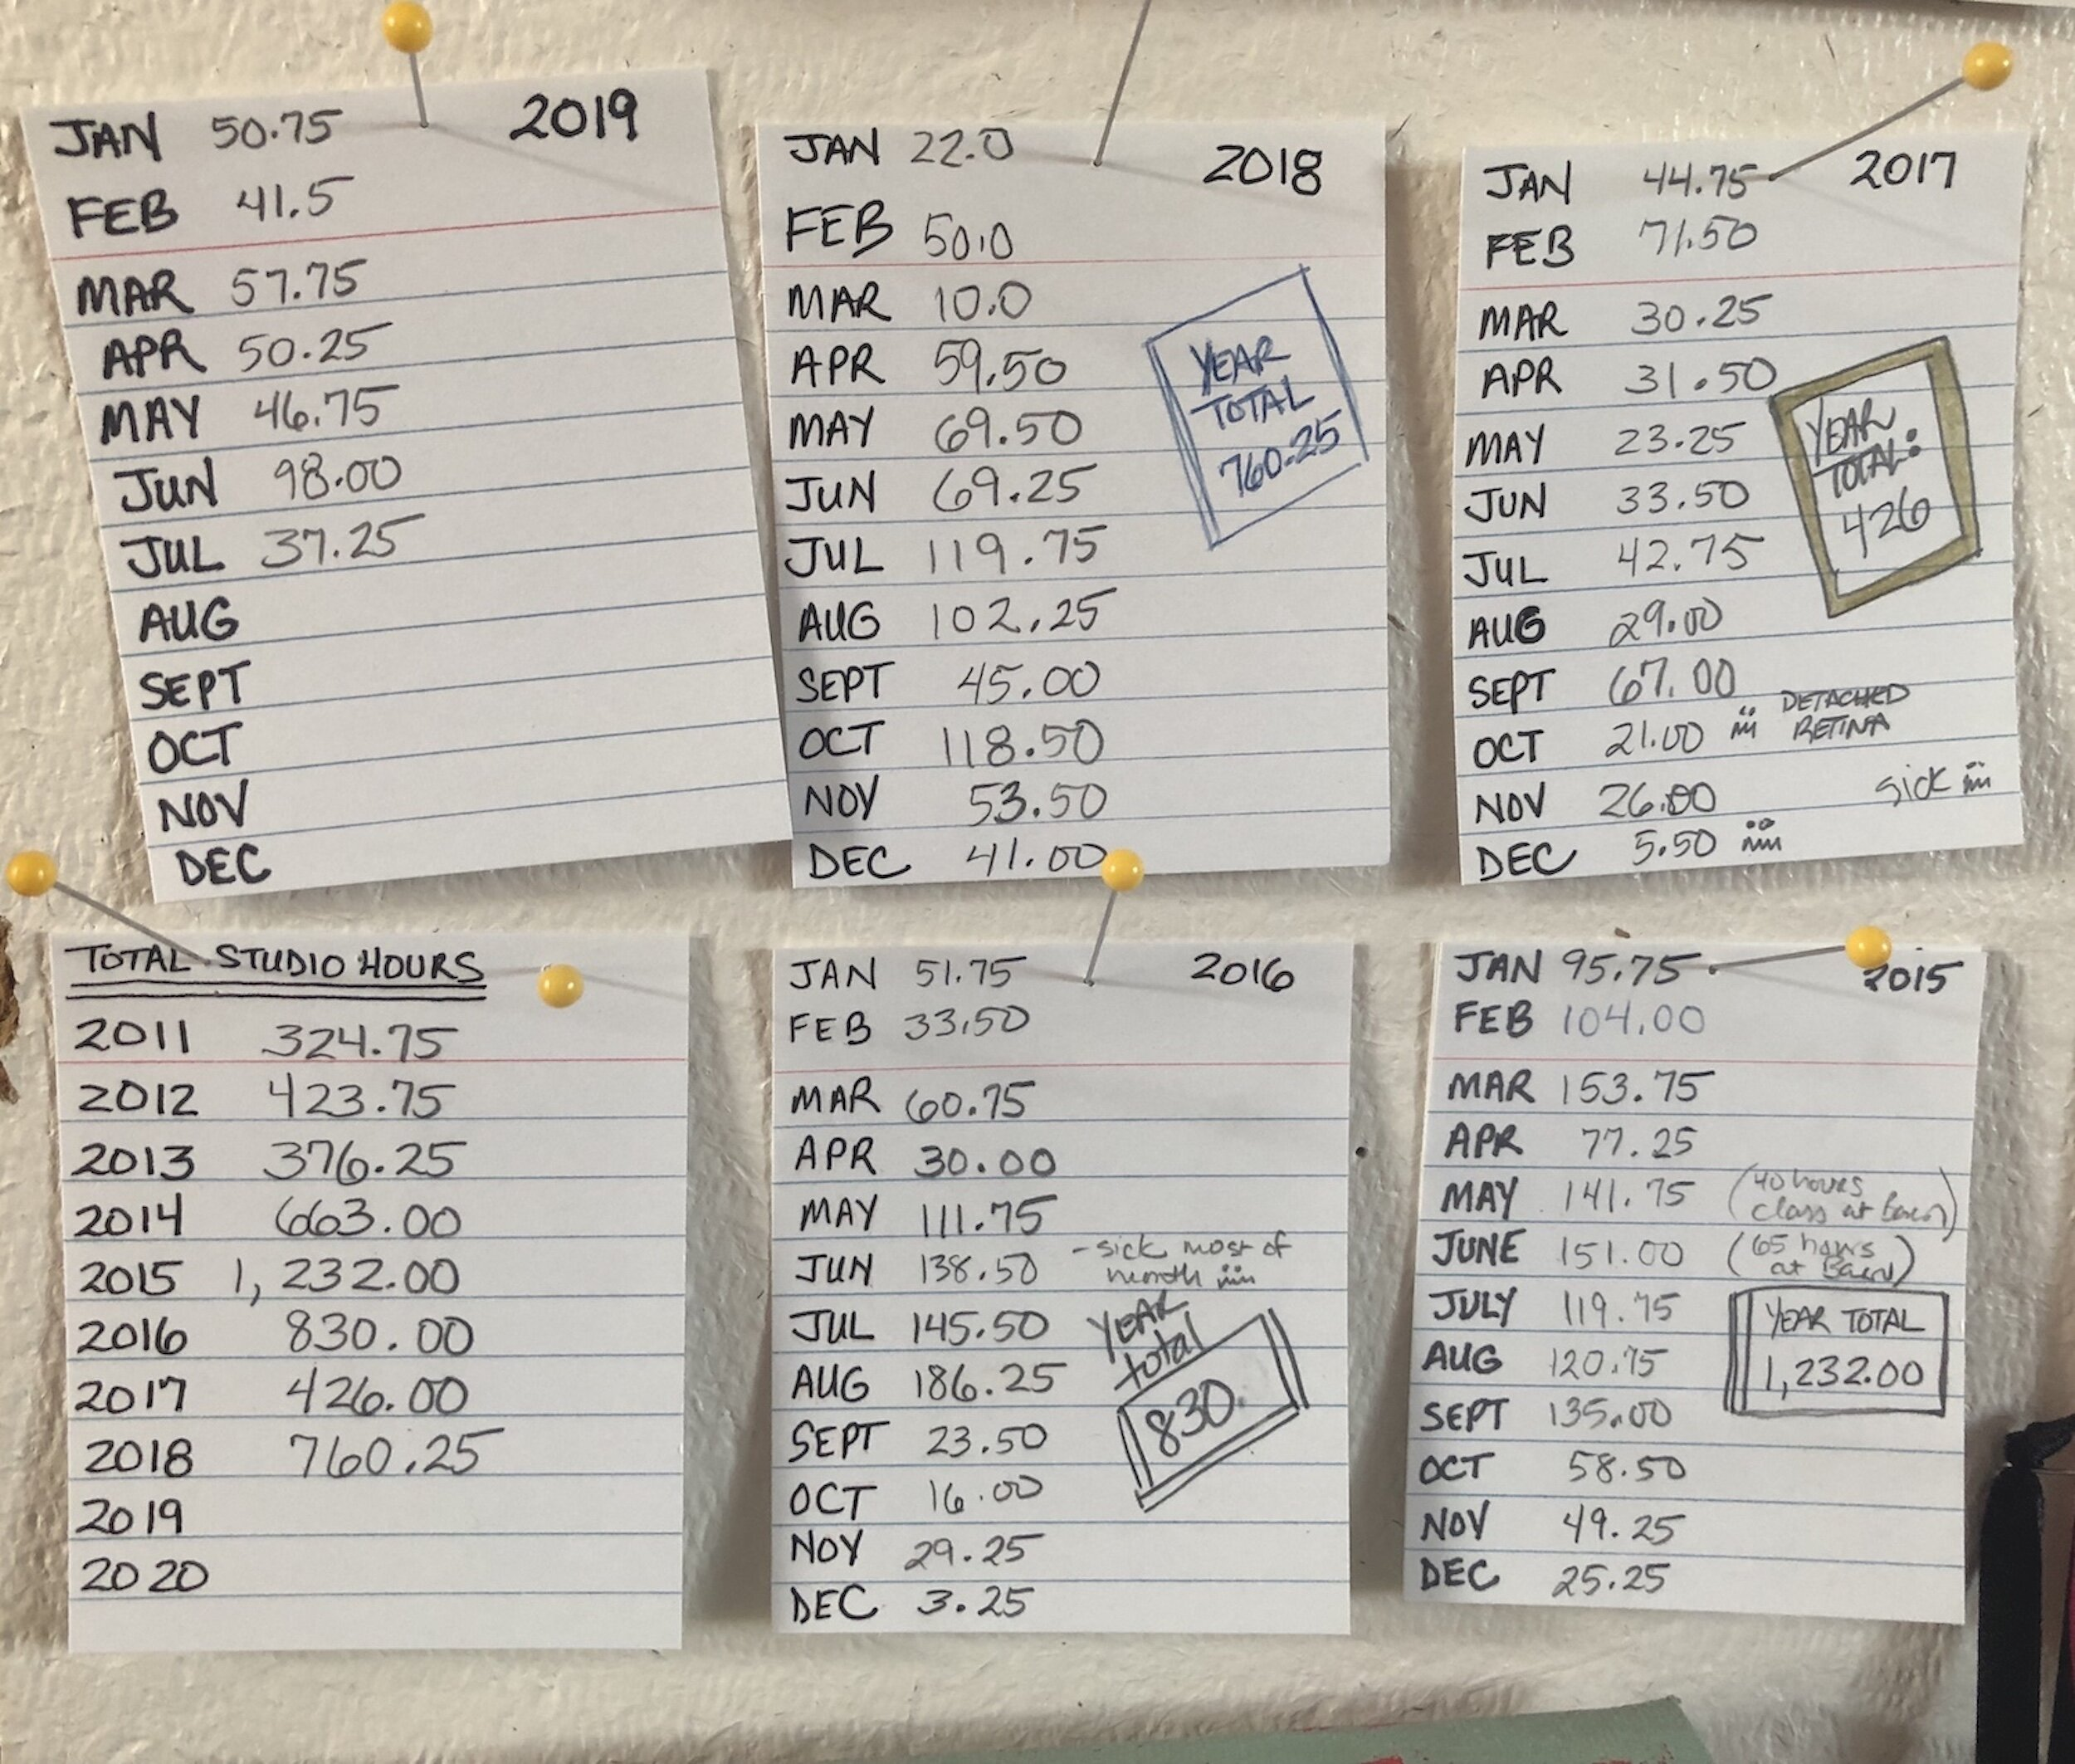 My studio hours from 2011 to today.